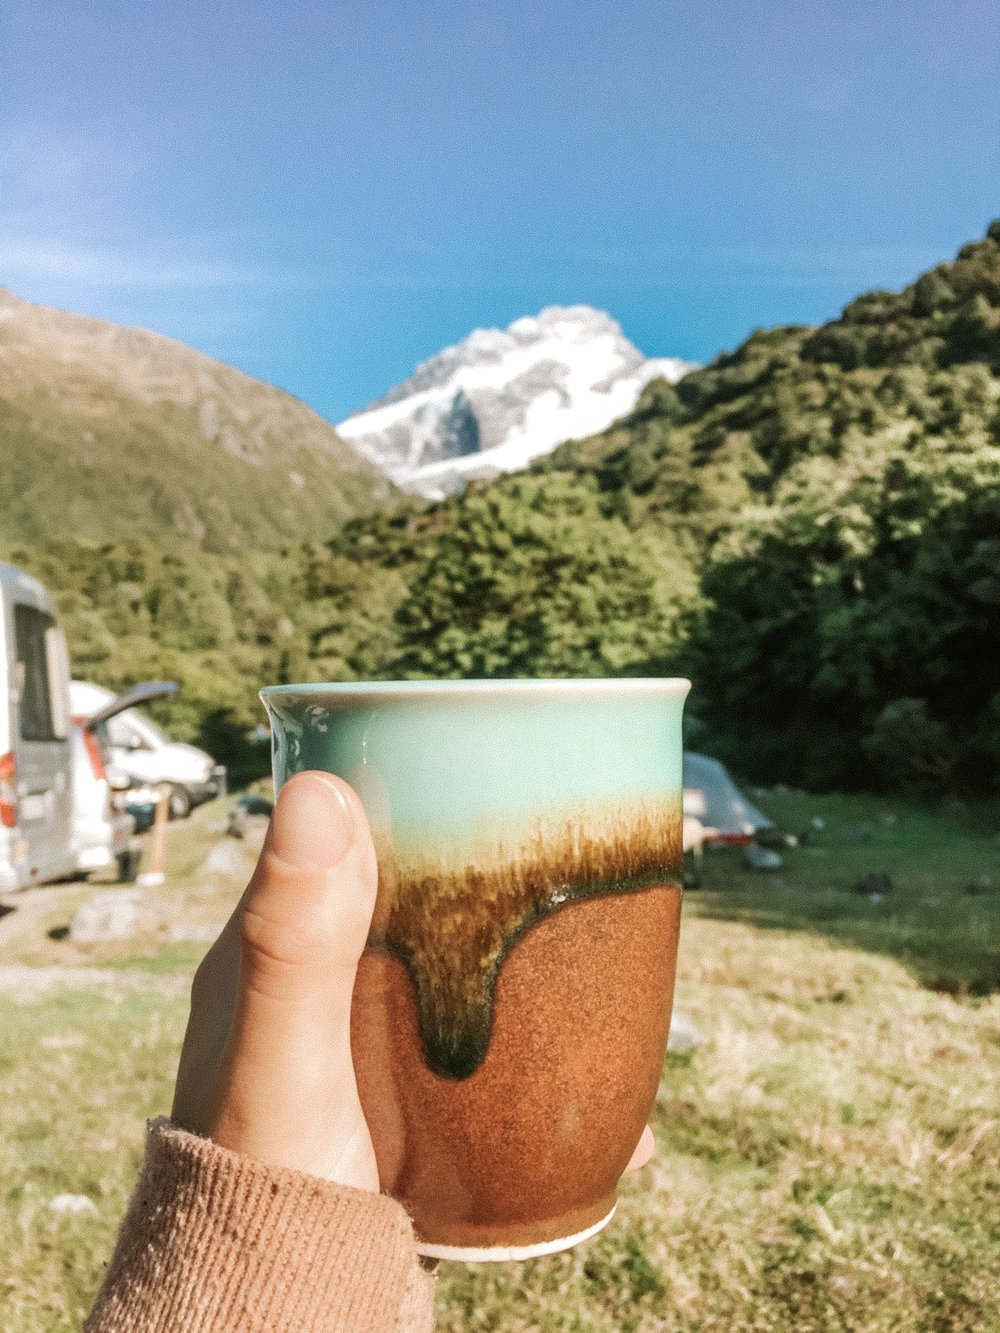 Cacao ceremony pre-hike with my mate, Aoraki (Mount Cook)